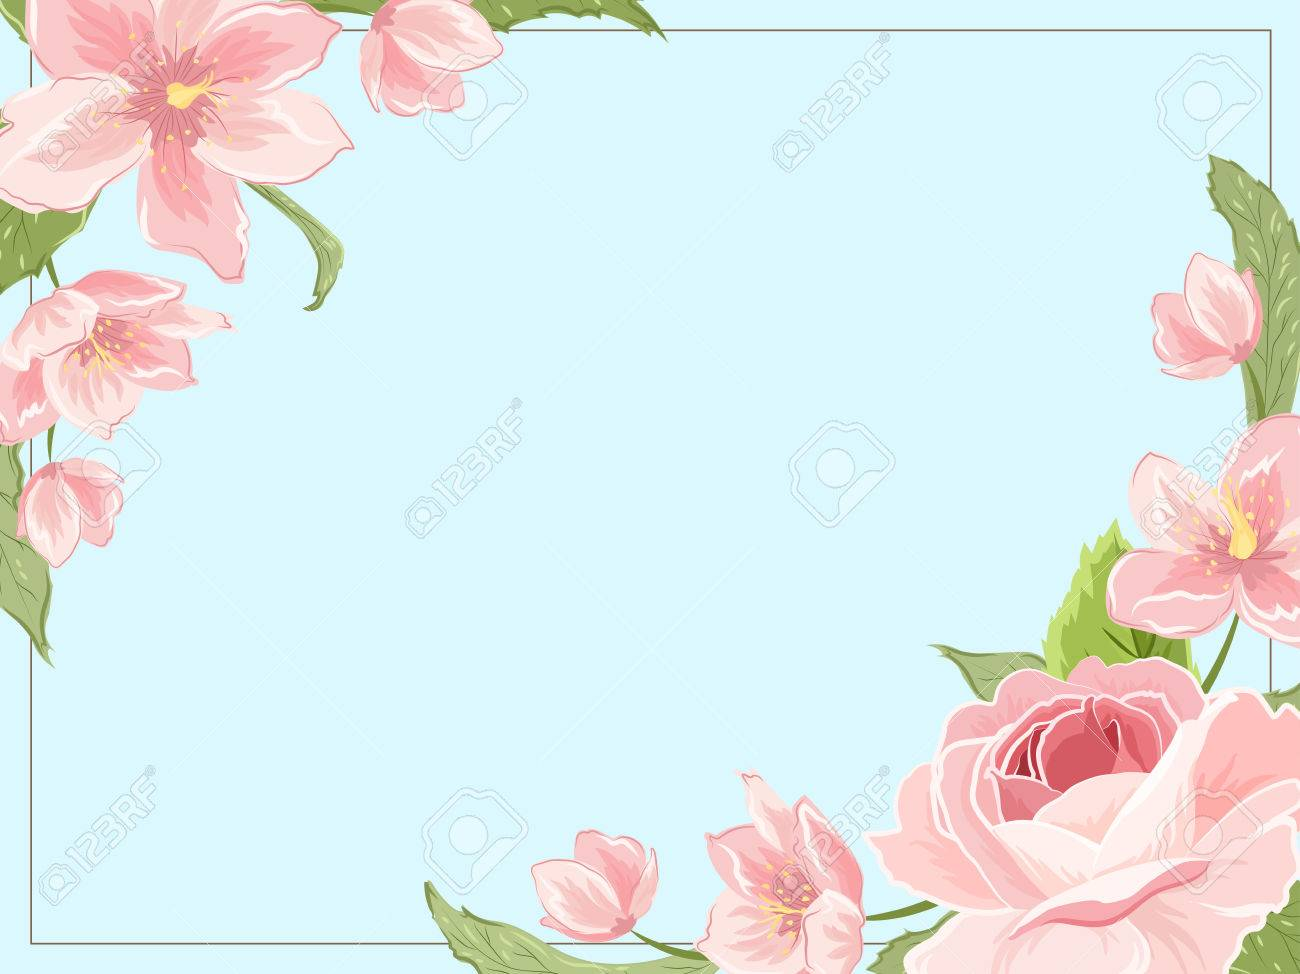 border frame template corners decorated with pink rose magnolia